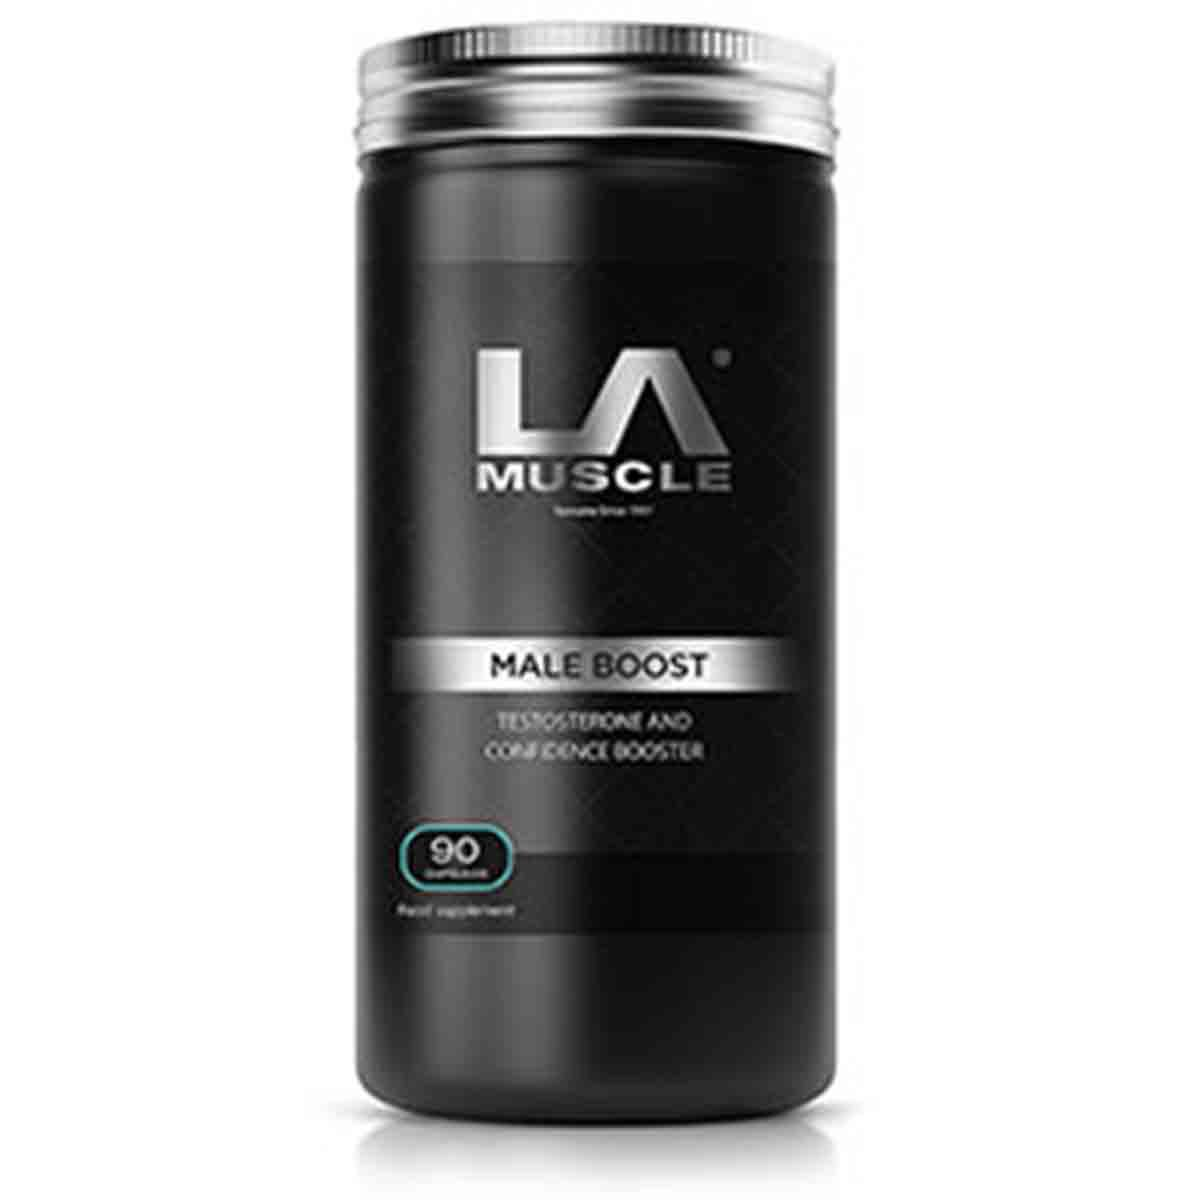 LA Muscle Male Boost